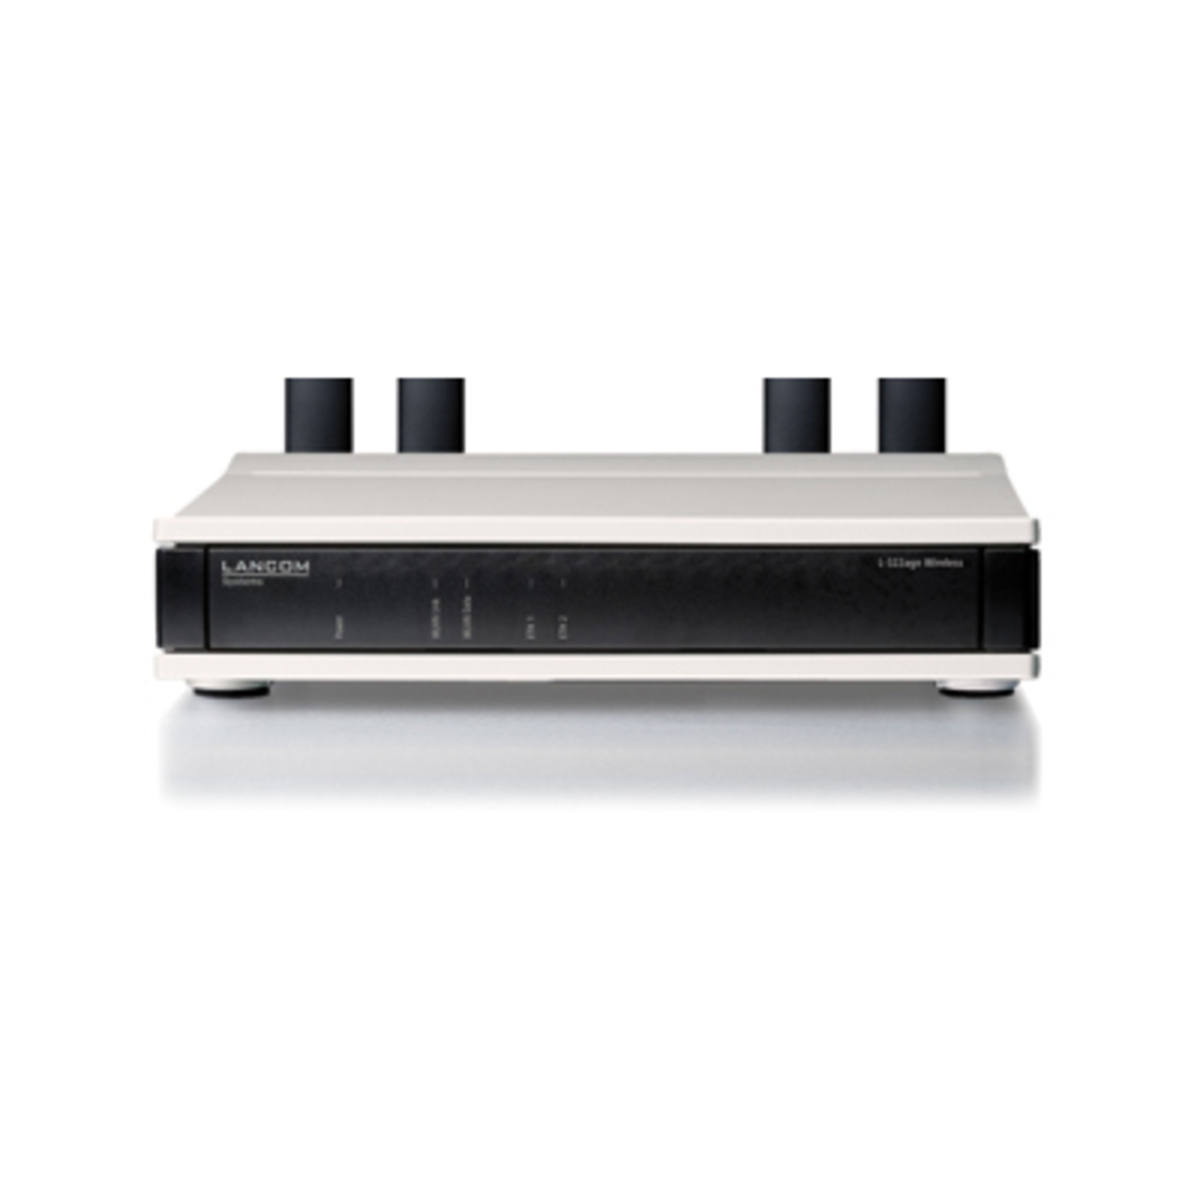 LANCOM L-322agn dual Wireless #wieneu